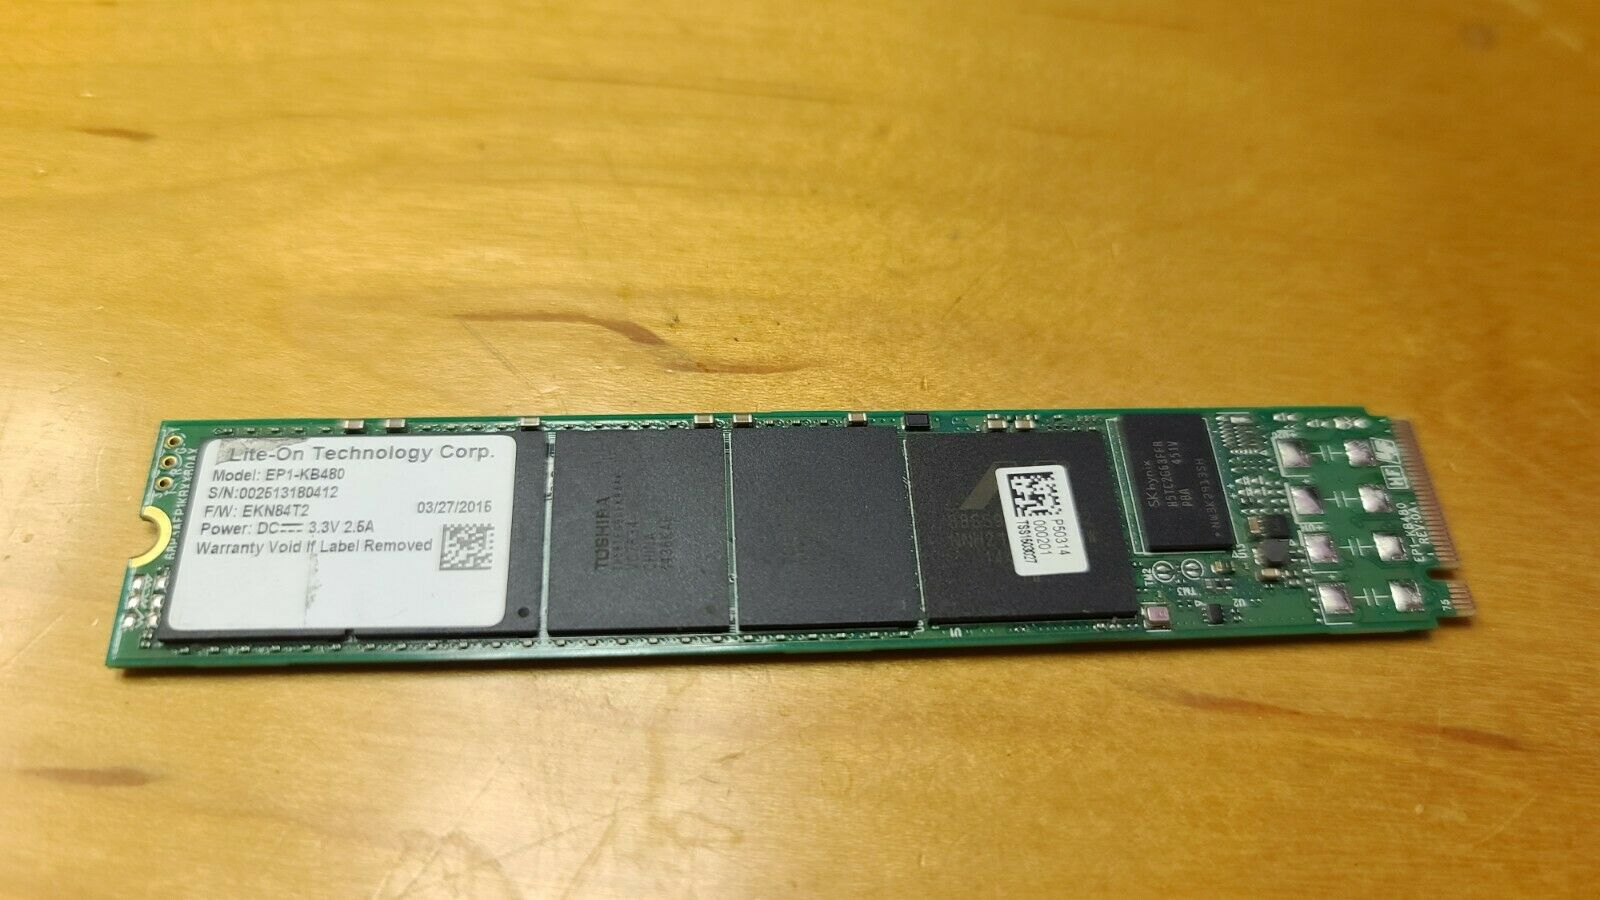 Lite-On EP1-KB480 480GB PCIe G2 NVMe M.2 22110 SSD Enterprise Solid State Drive . Buy it now for 35.89